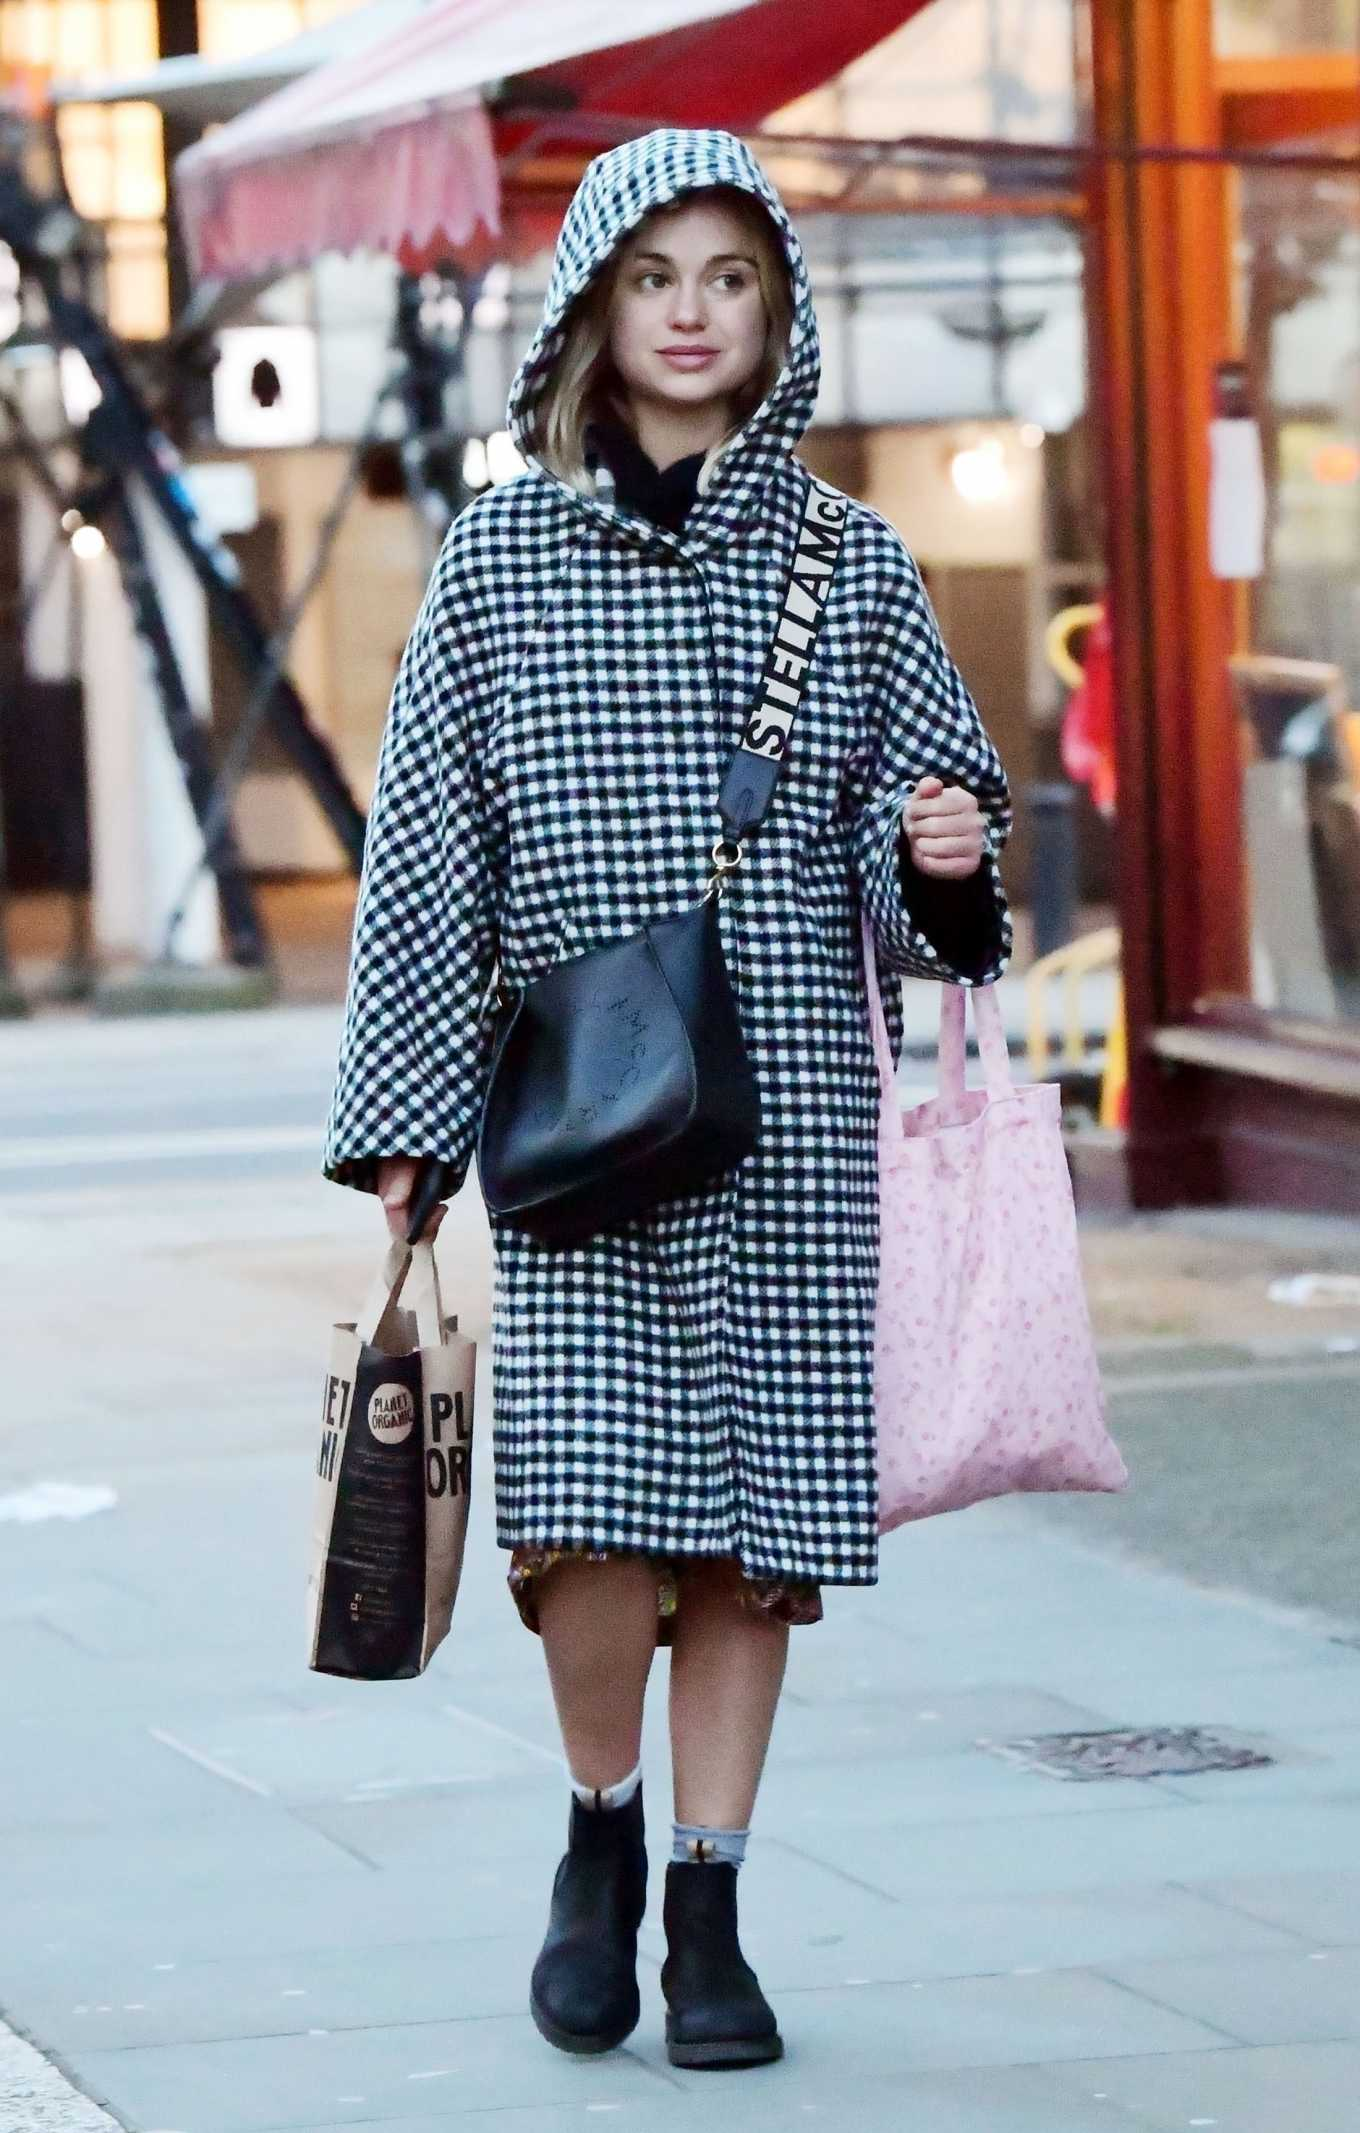 Amelia Windsor 2020 : Amelia Windsor – Looks stylis while out in the trendy area of Notting Hill-05